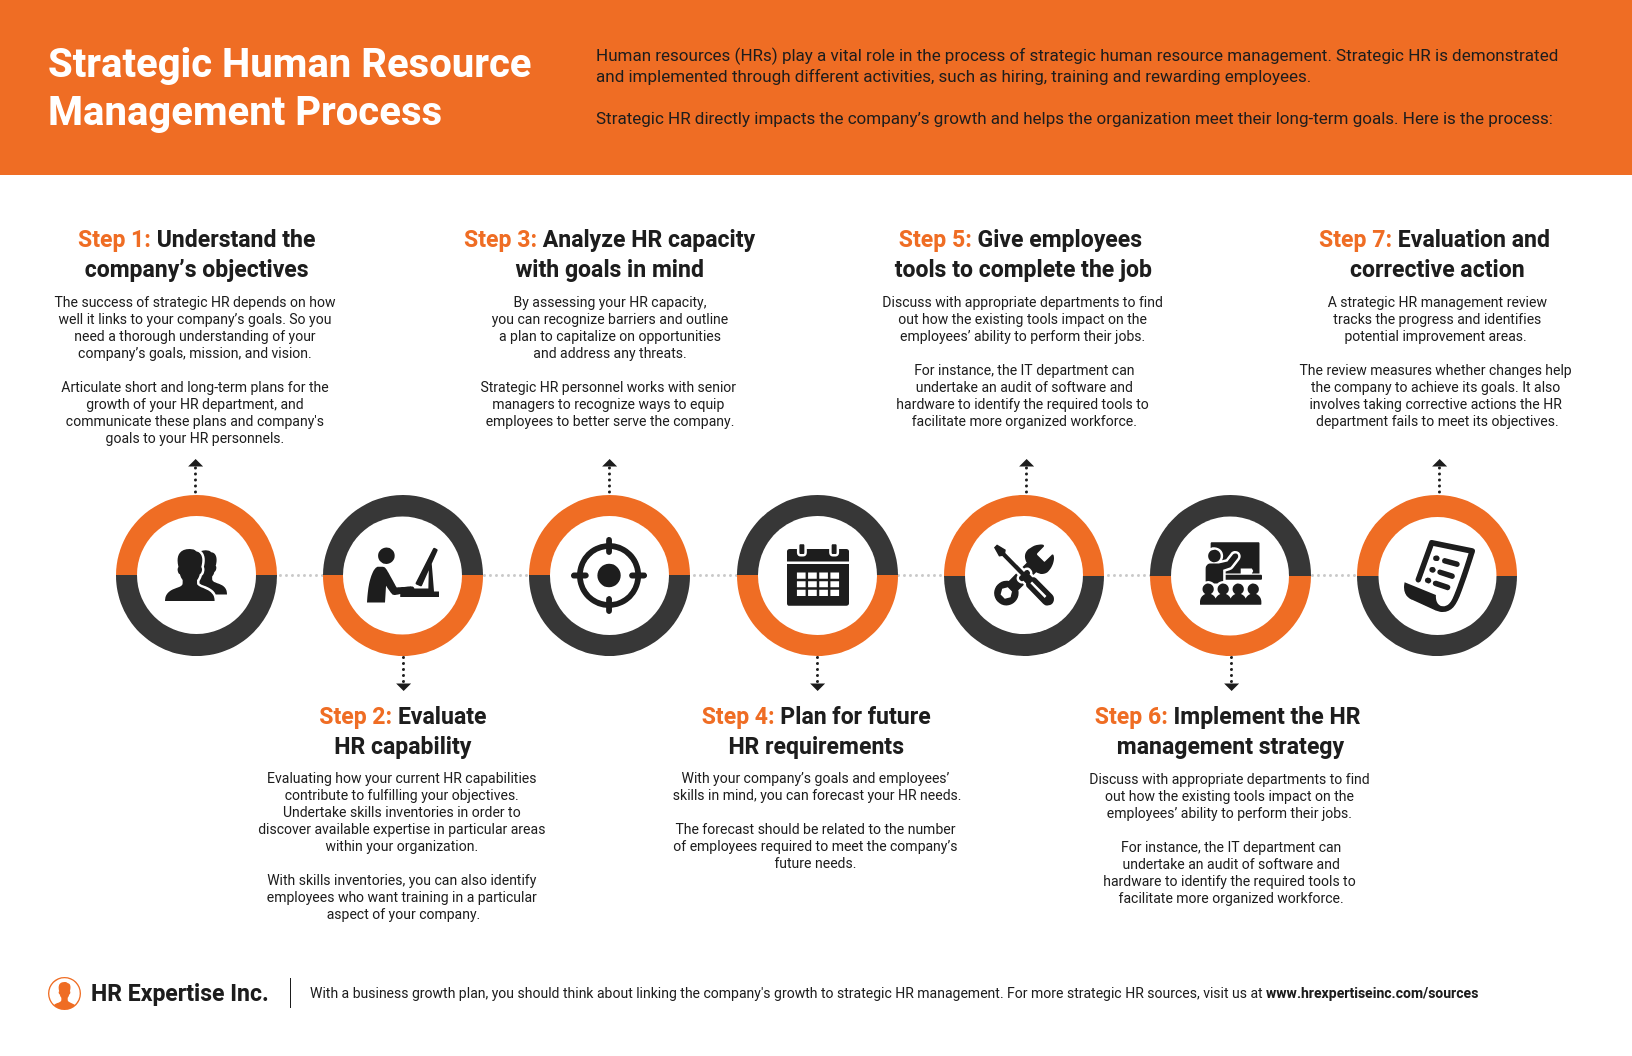 Strategic Human Resource Management Process Infographic